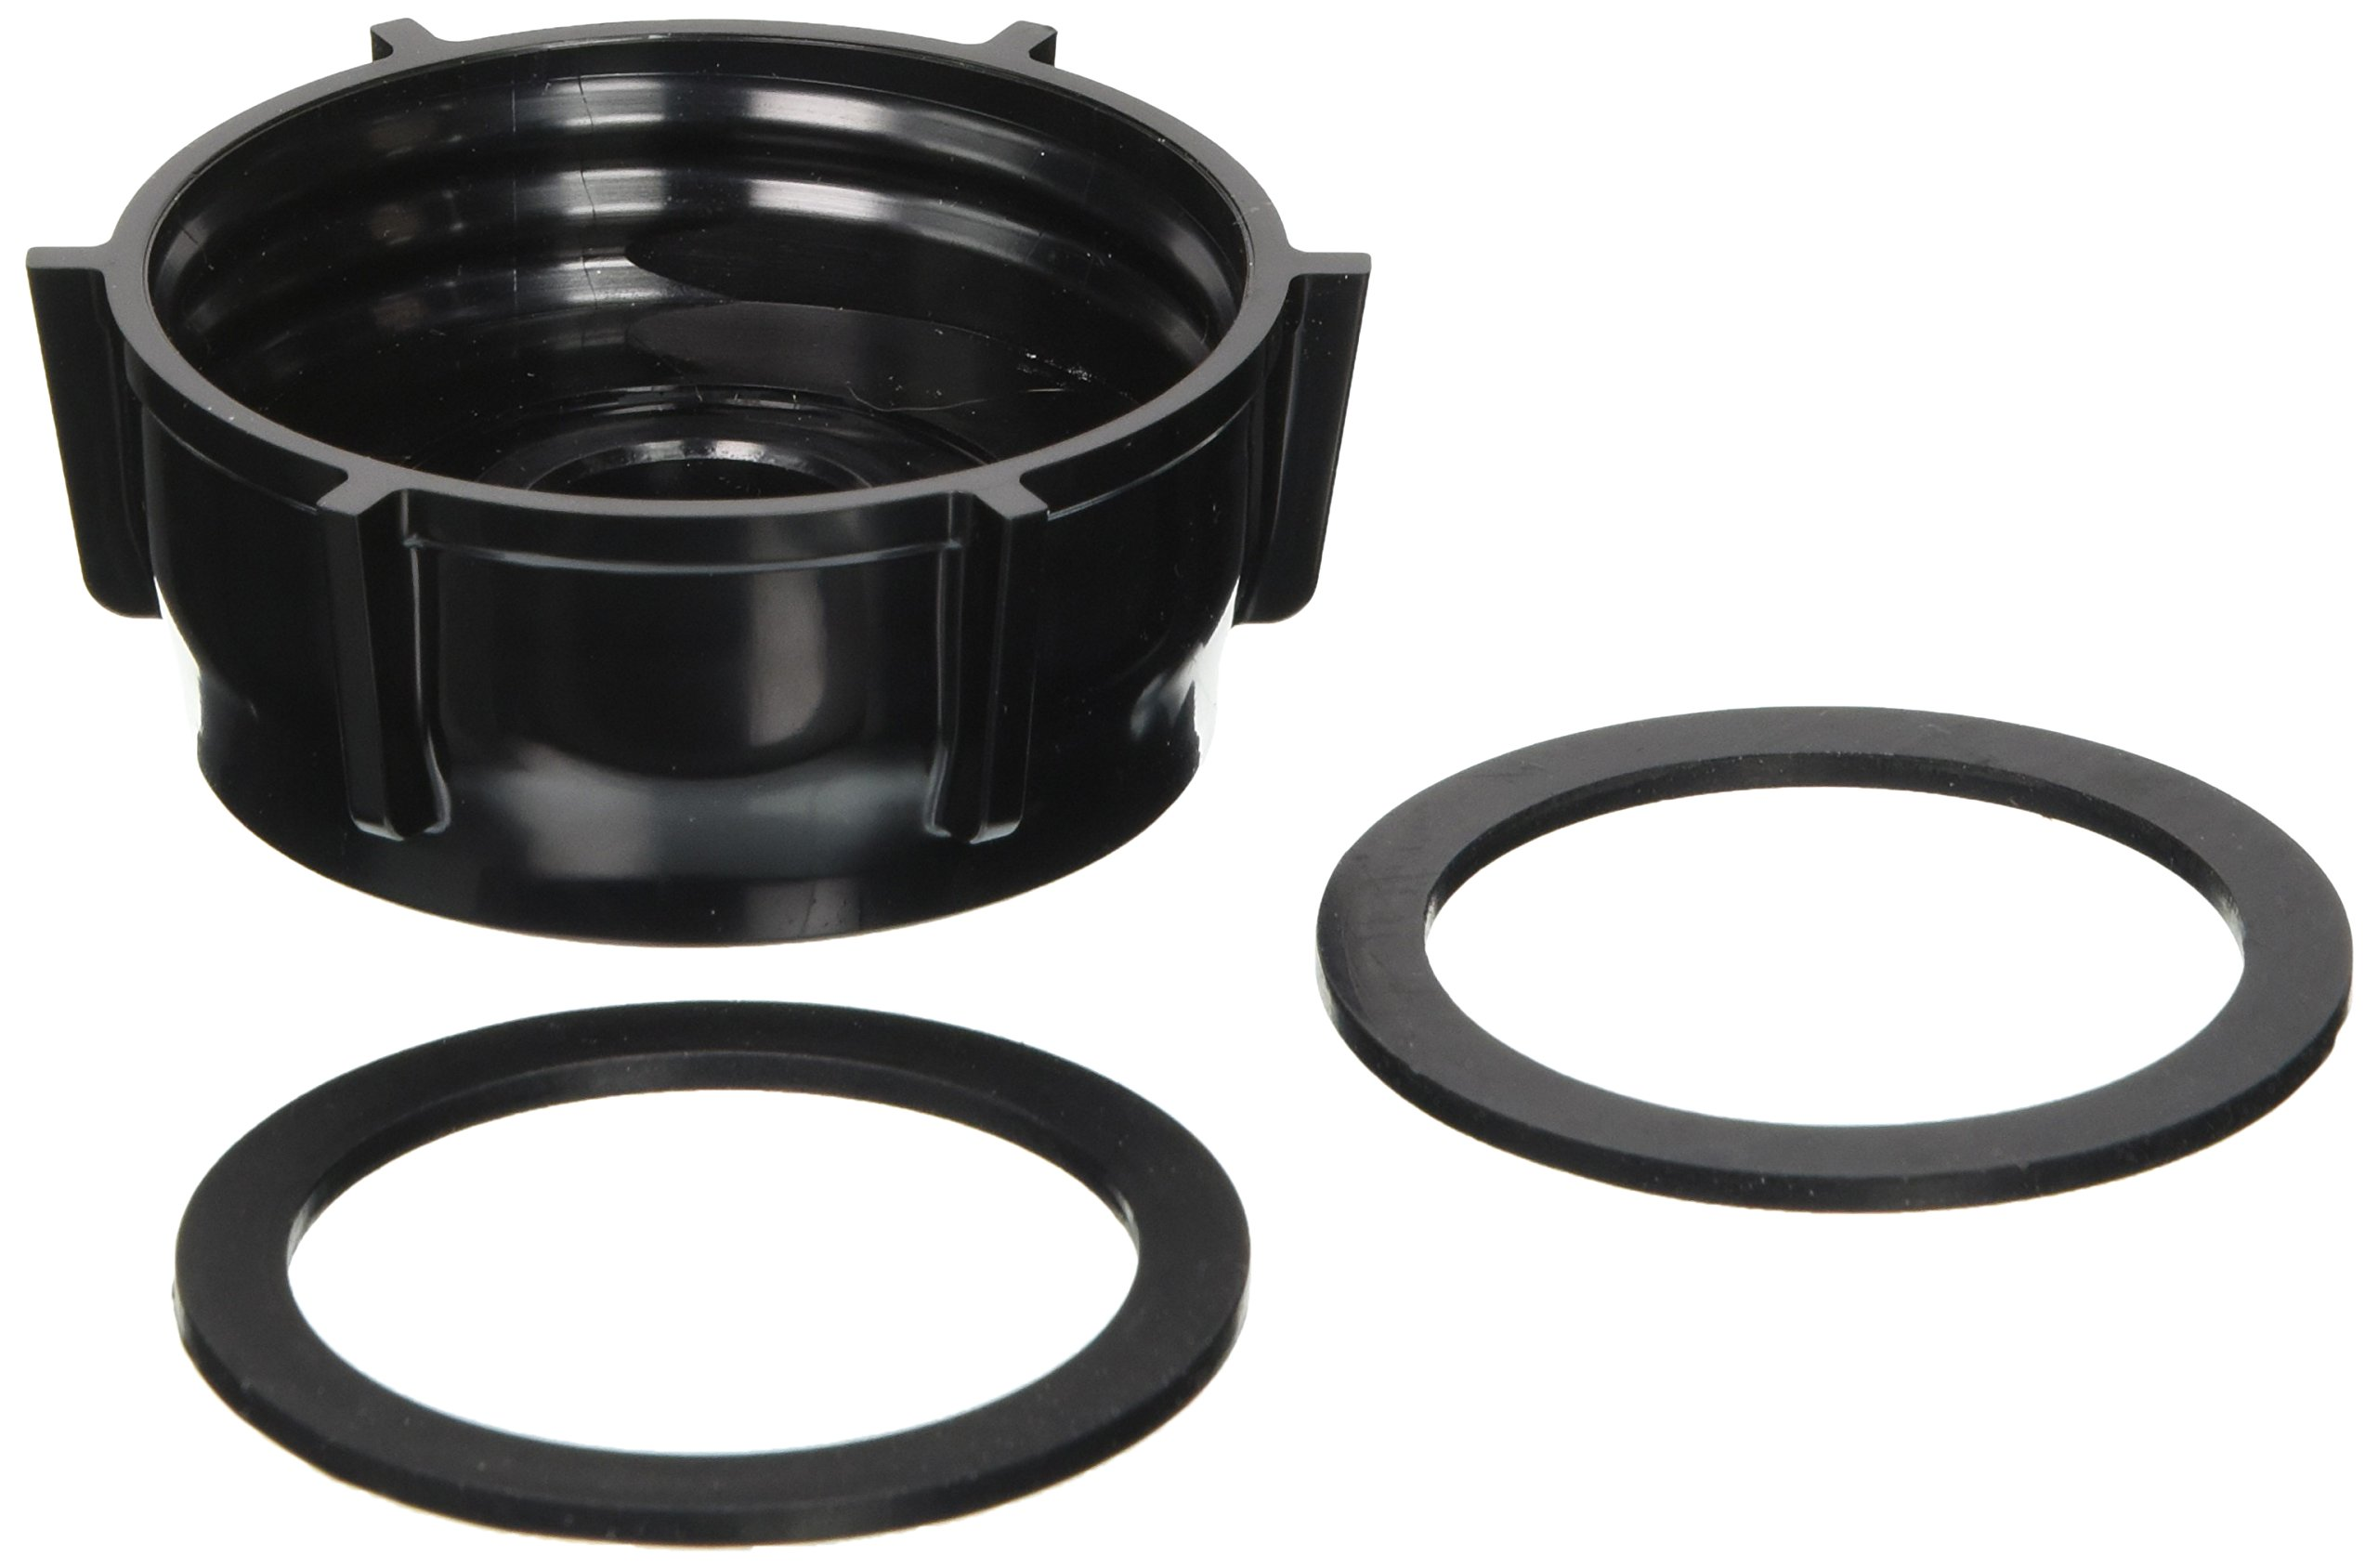 Home Appliance Parts Cooktop Parts Bottom Jar Base With Cap Gasket Seal Ring Replacement Part Juicer Spare Assembly By Scientific Process